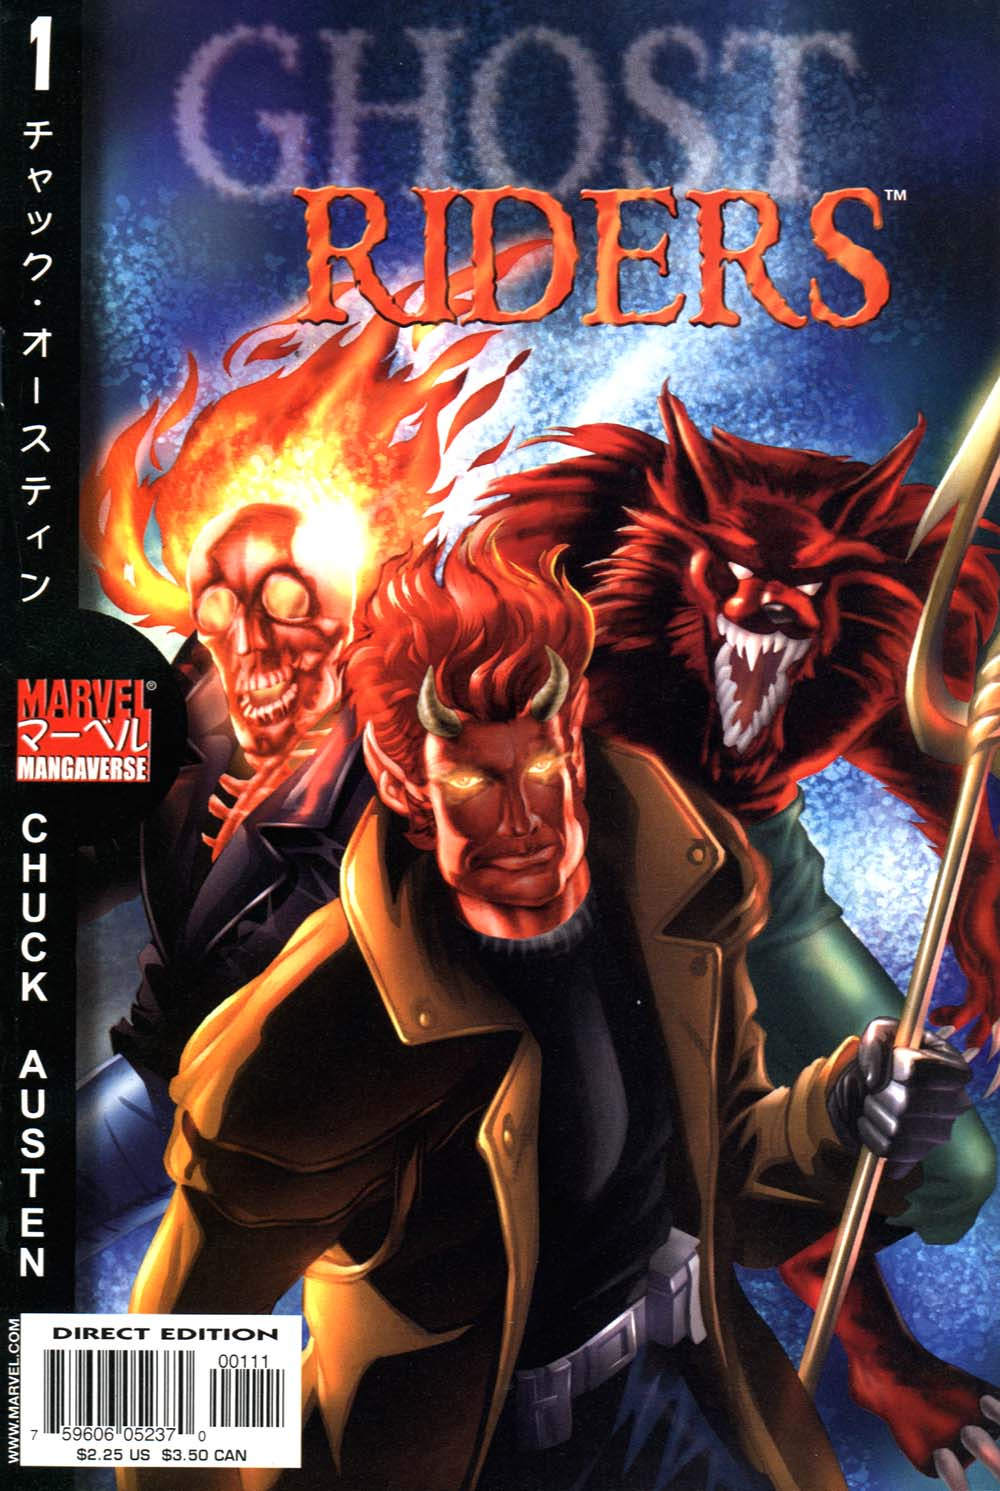 Marvel Mangaverse: Ghost Riders Full Page 1